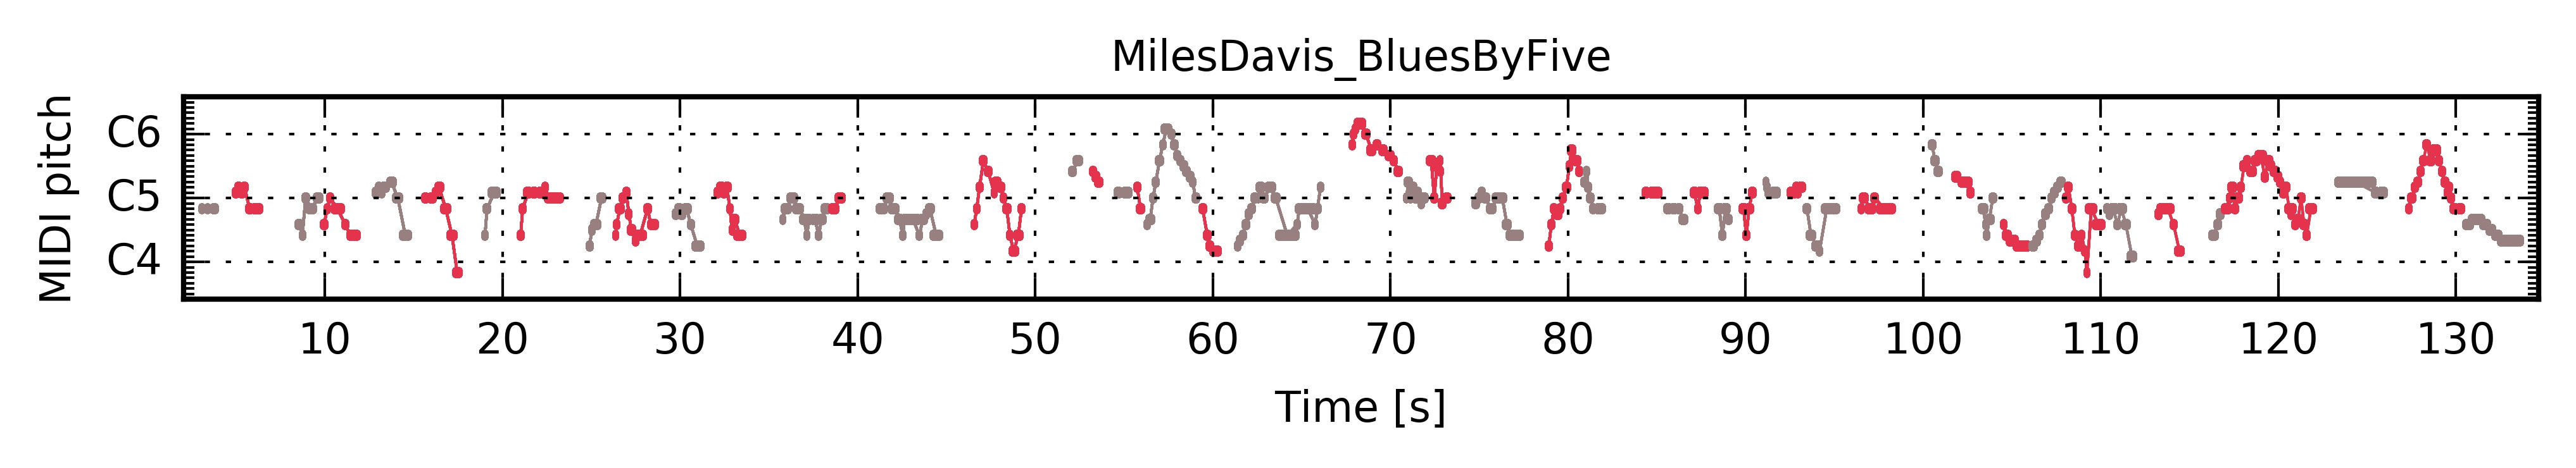 "Miles Davis ""Blues by Five"" — The Jazzomat Research Project"